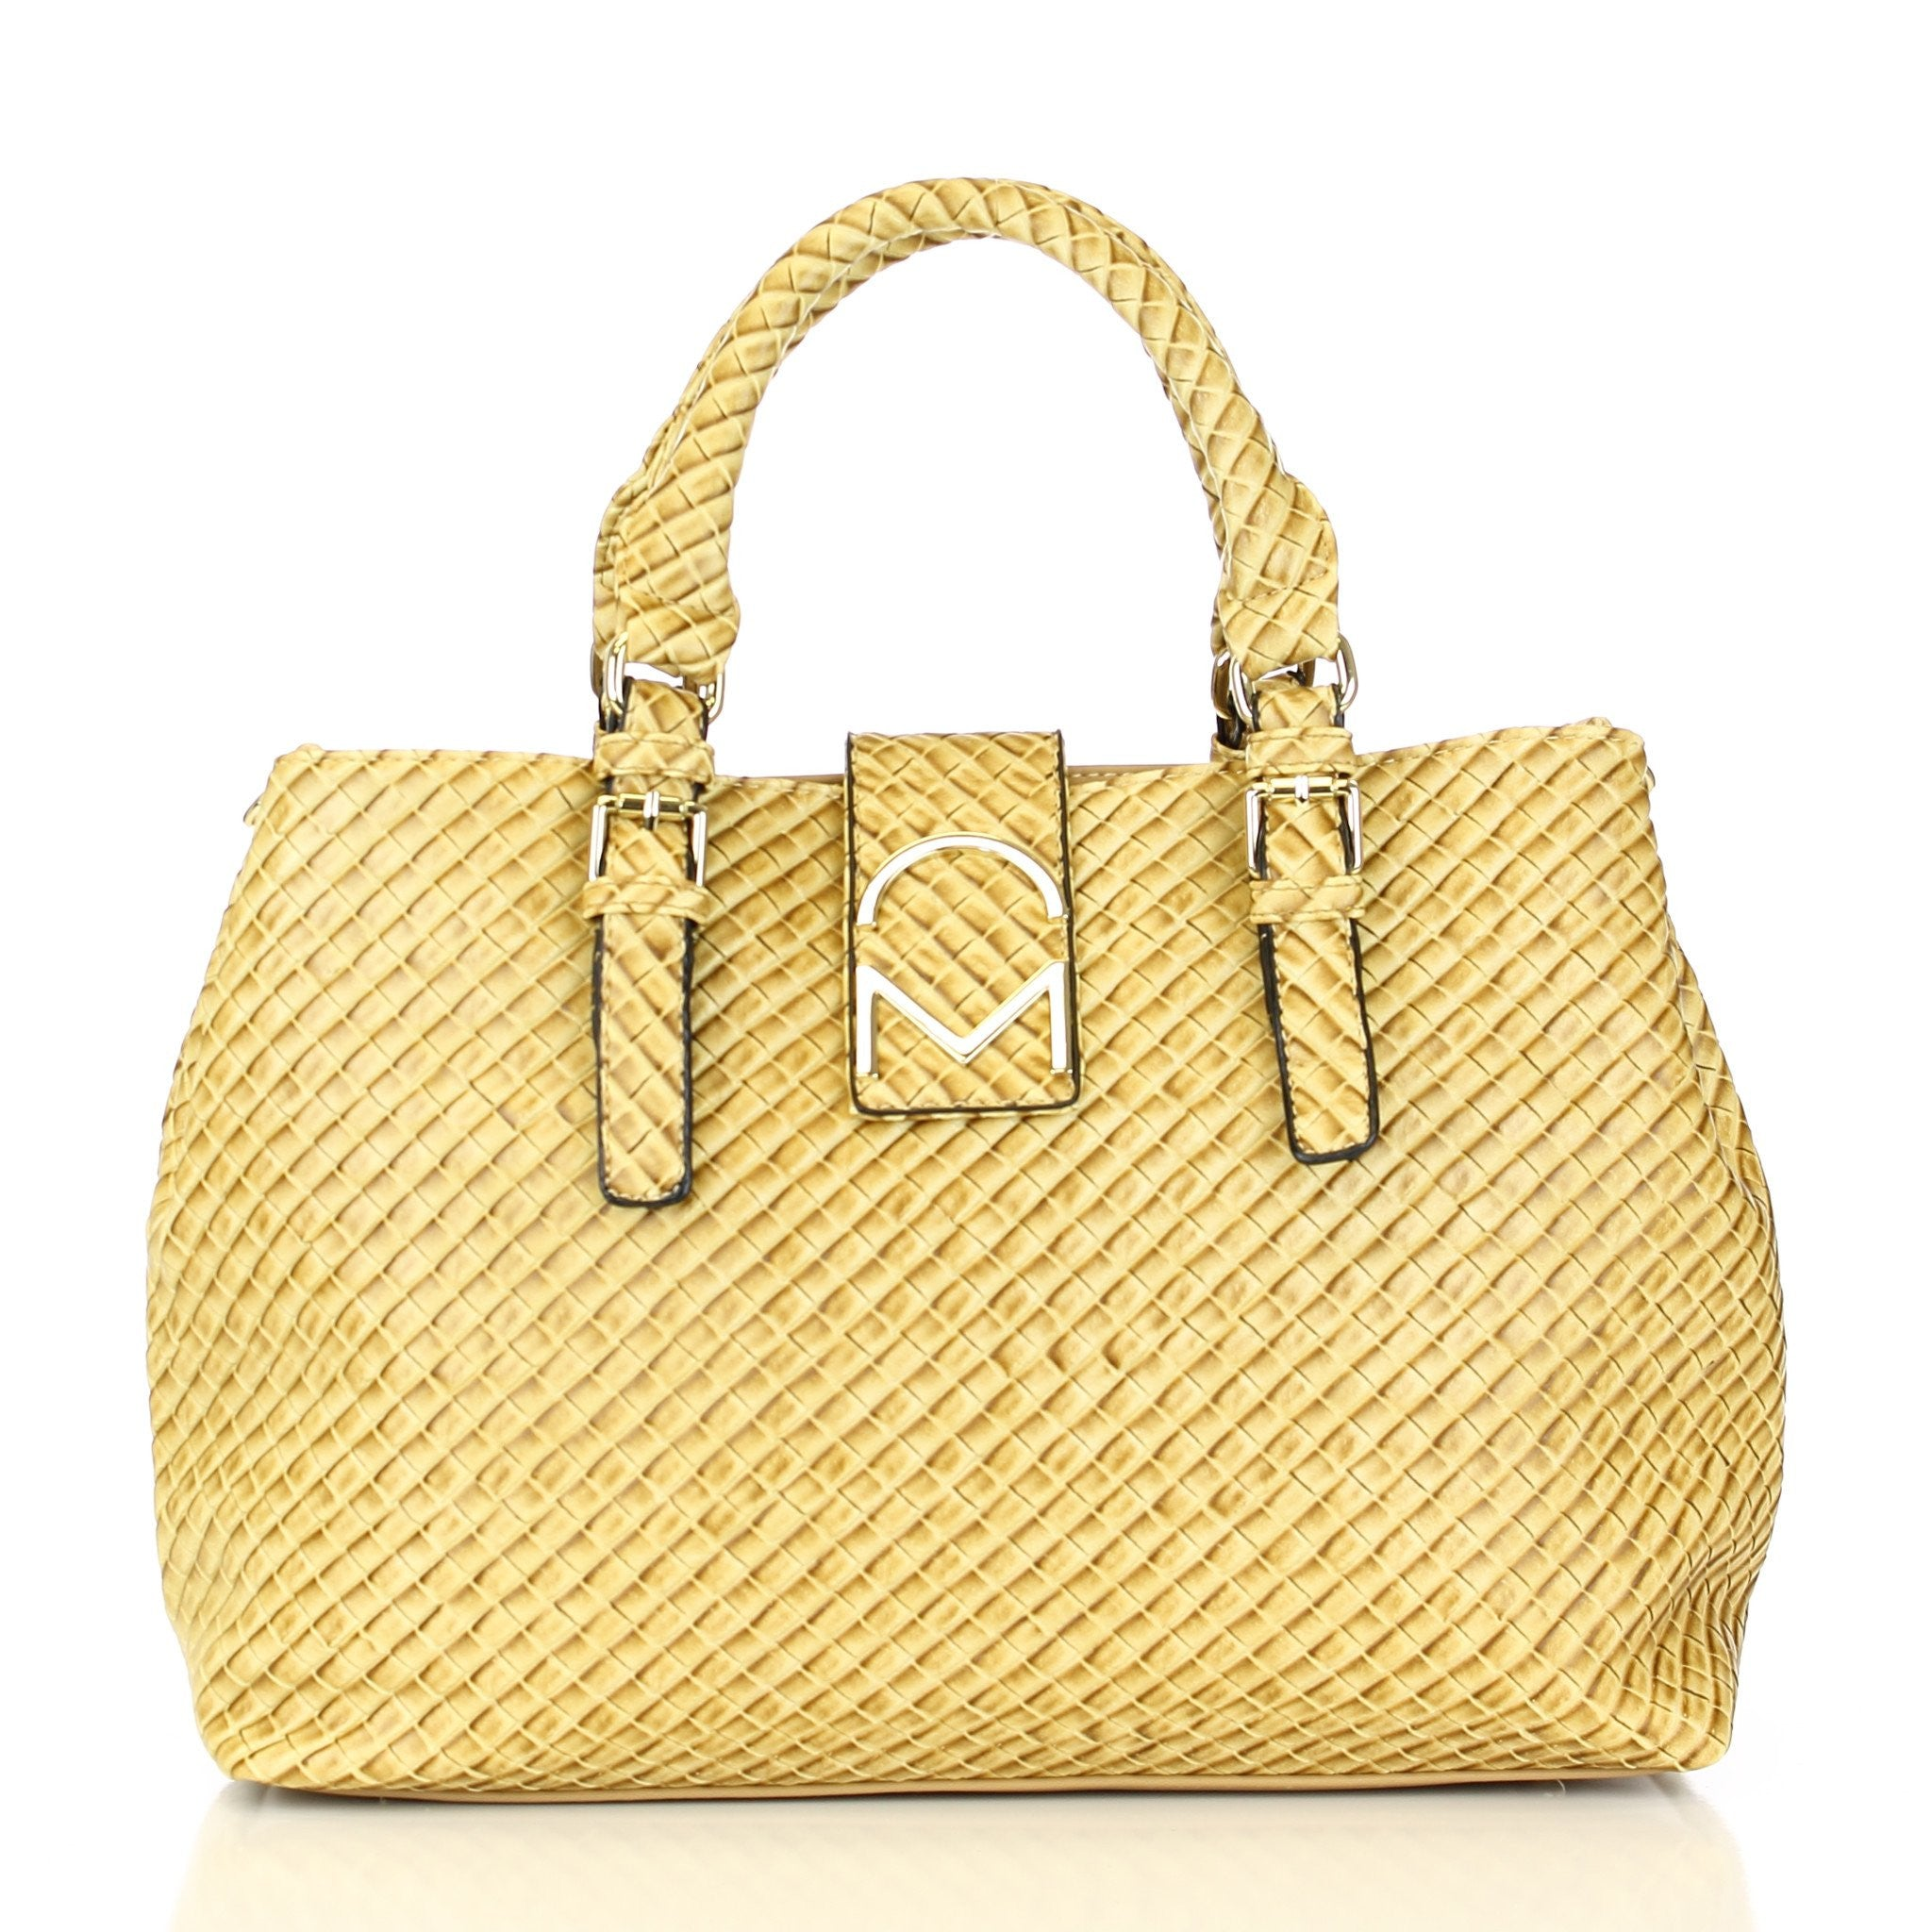 Weave Pattern Allure Satchel